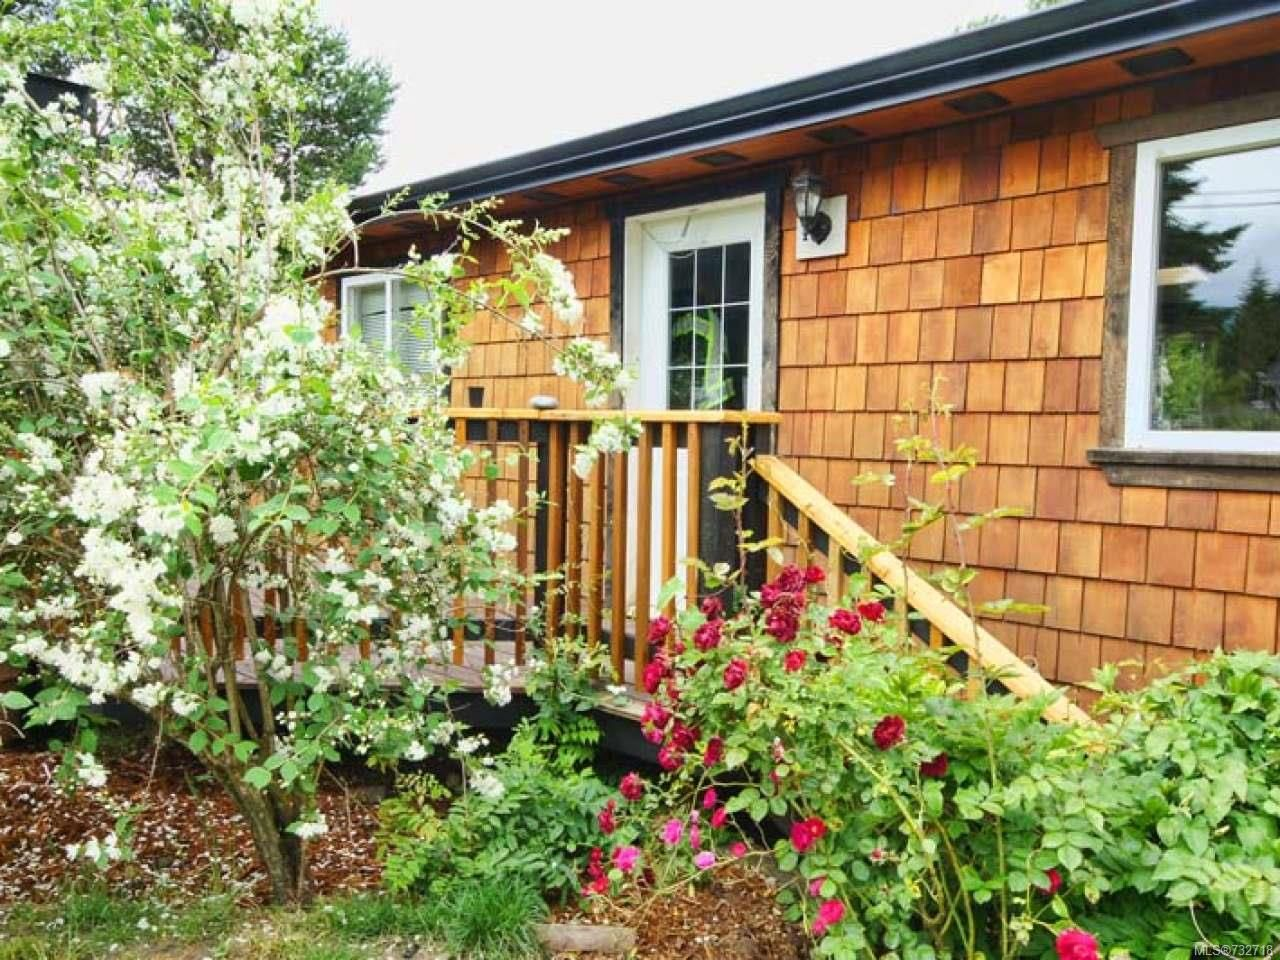 Photo 15: Photos: 921 POPLAR Way in ERRINGTON: PQ Errington/Coombs/Hilliers Manufactured Home for sale (Parksville/Qualicum)  : MLS®# 732718